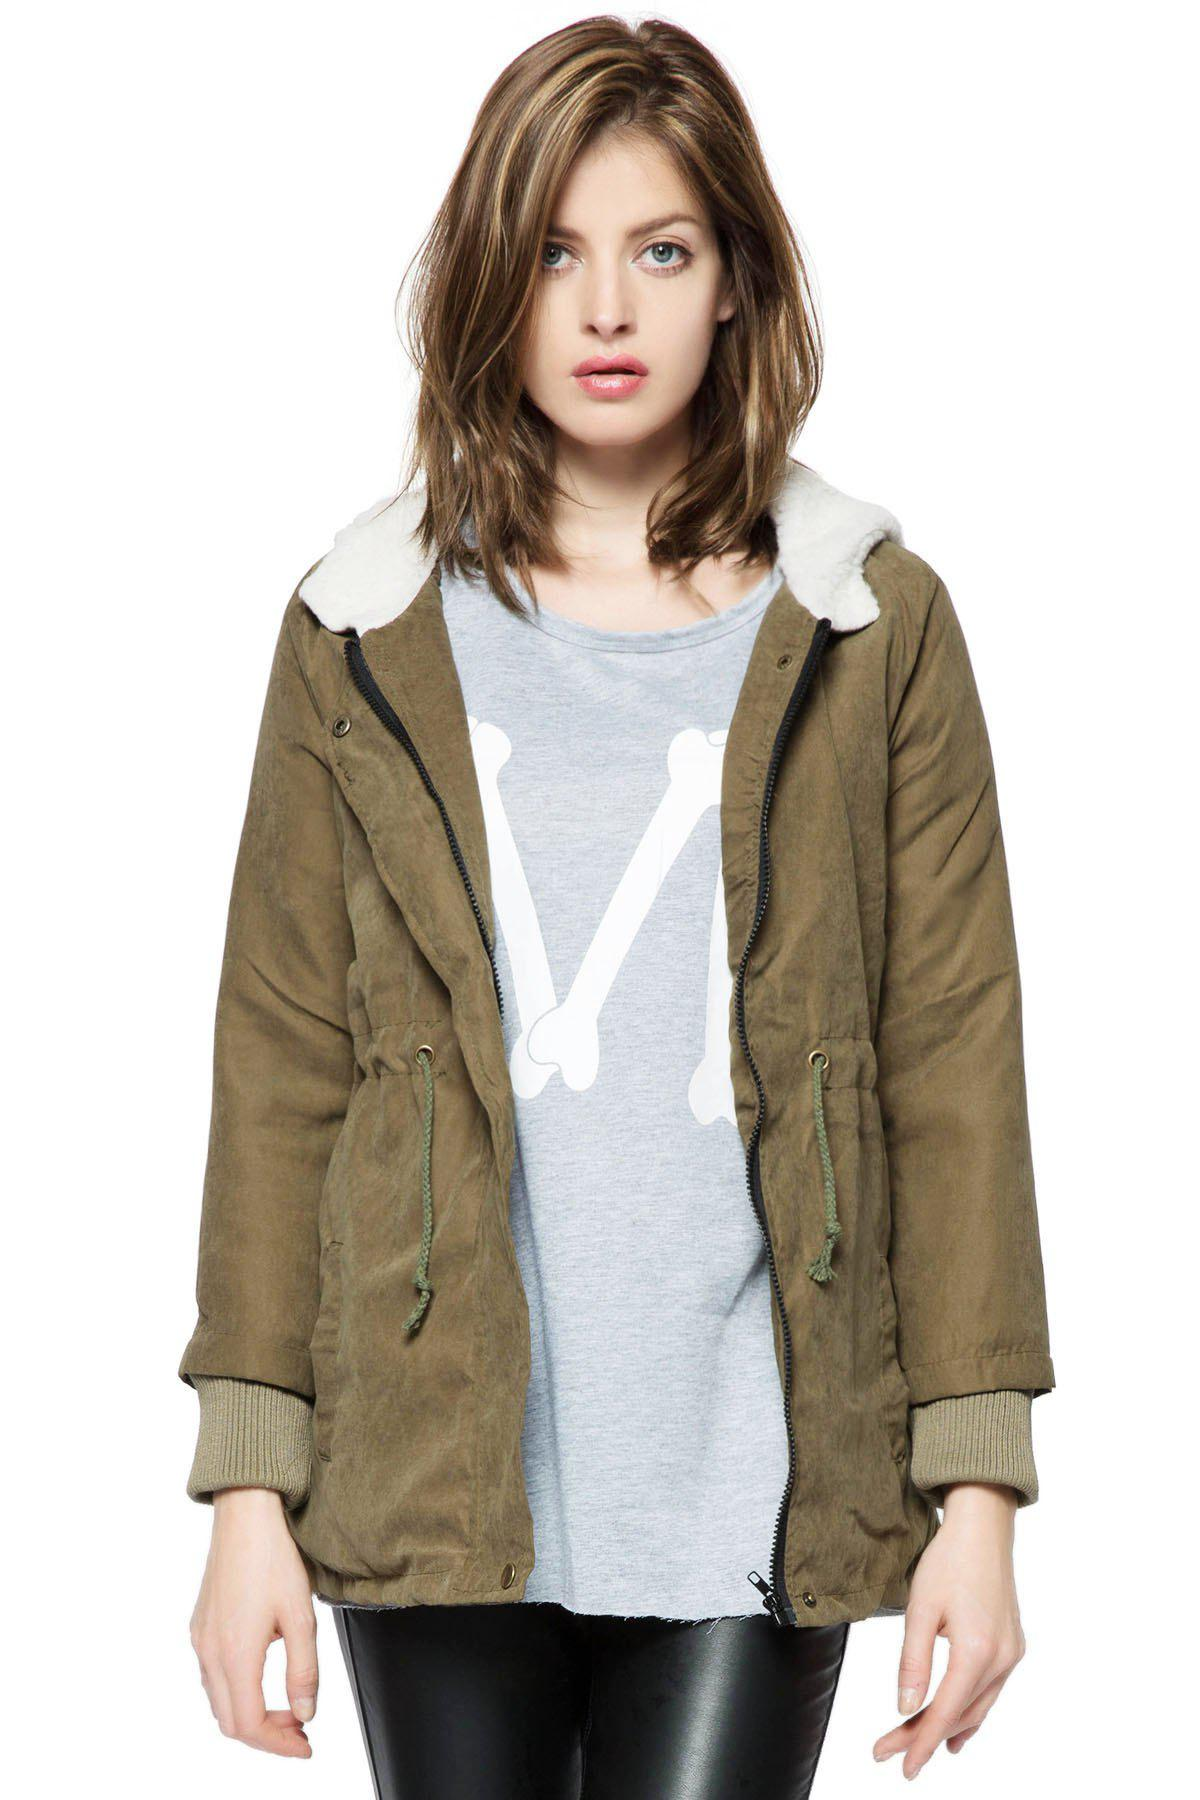 New Cotton-padded Thicken Berber Fleece Coat Frock OvercoatWOMEN<br><br>Size: ONE SIZE; Color: ARMY GREEN; Clothes Type: Trench; Material: Cotton,Polyester; Type: Wide-waisted; Shirt Length: Long; Sleeve Length: Full; Collar: Hooded; Pattern Type: Solid; Embellishment: Pleated; Style: Casual; Weight: 0.565kg; Package Contents: 1 x Coat;